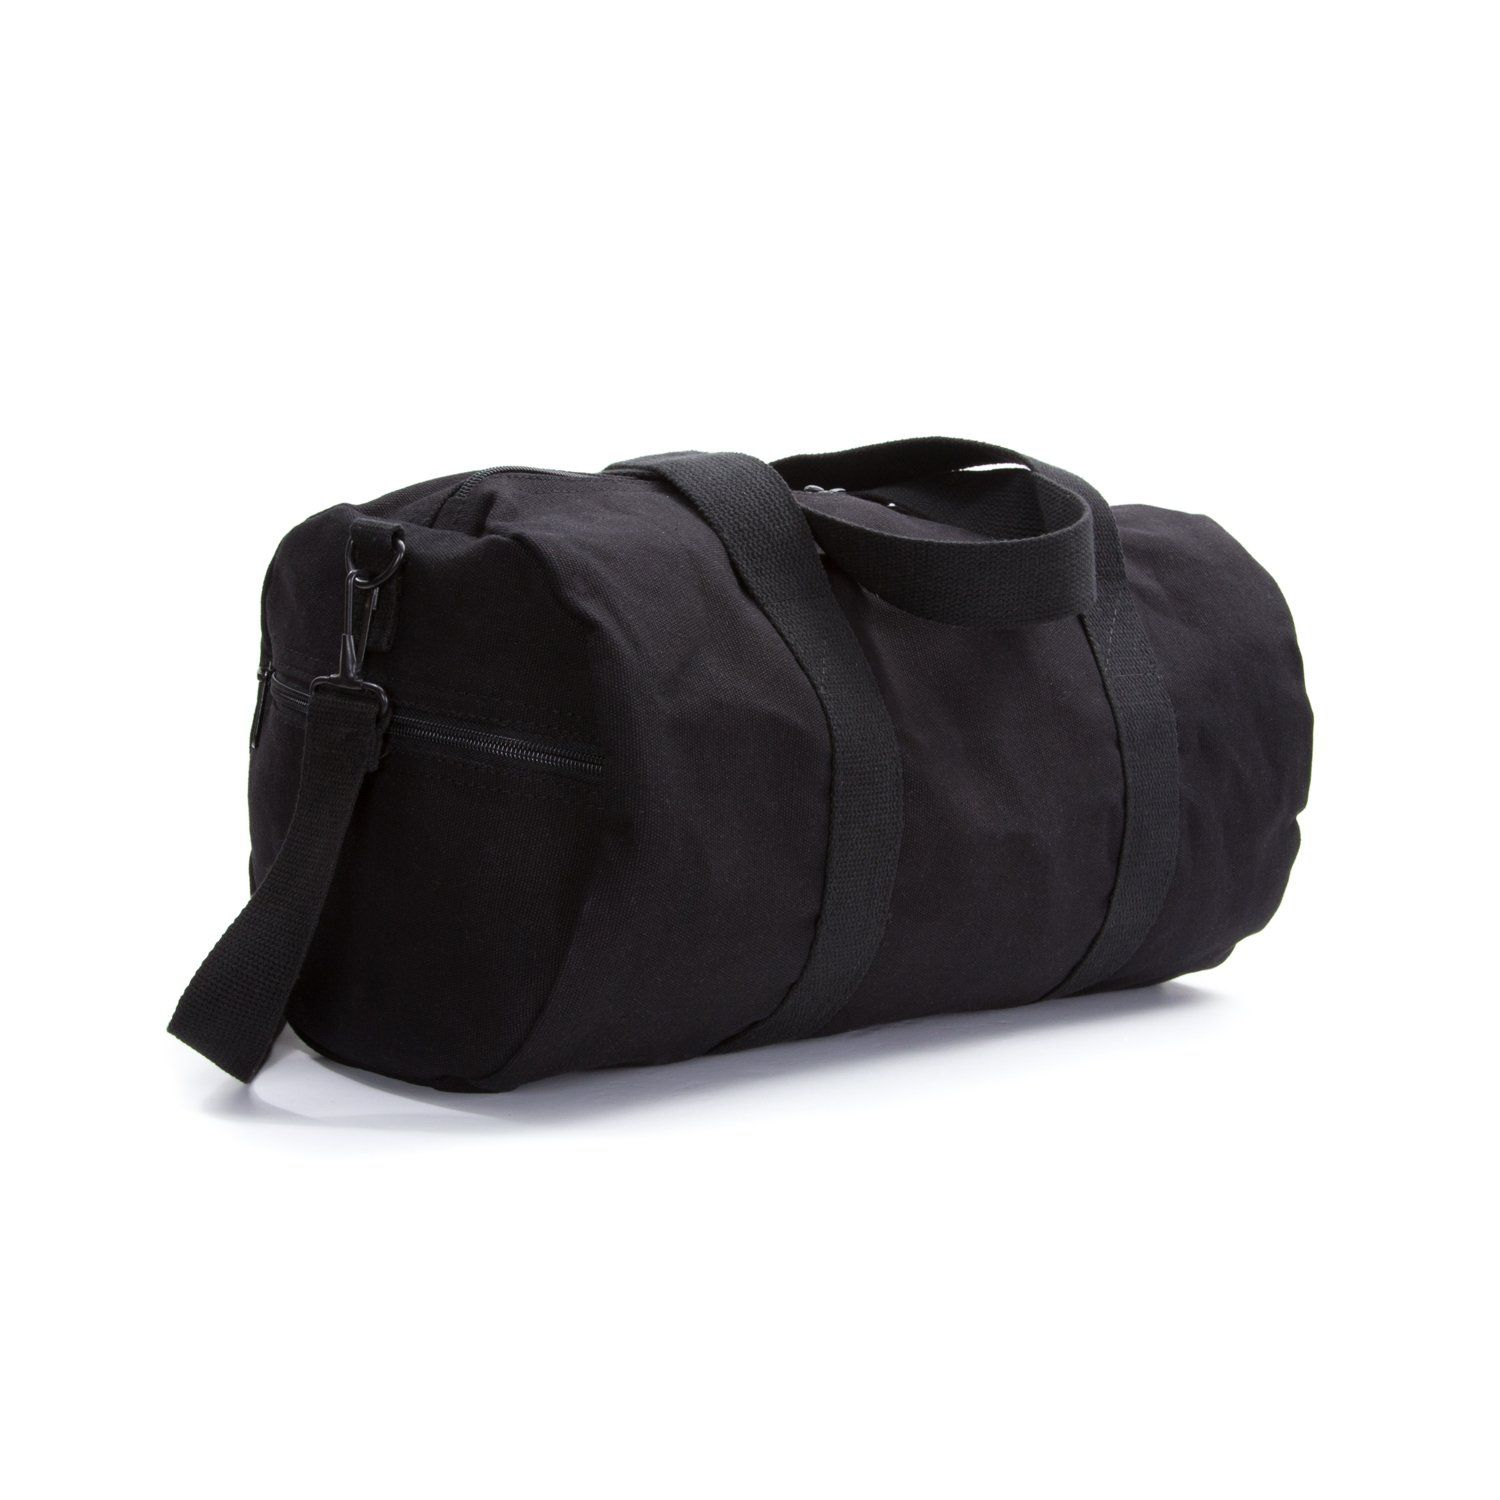 17756d9c85 USMC Semper Fi Skull Marine Corp Sport Heavyweight Canvas Duffel Bag in  Black and White Large     You can find more details by visiting the image  link.